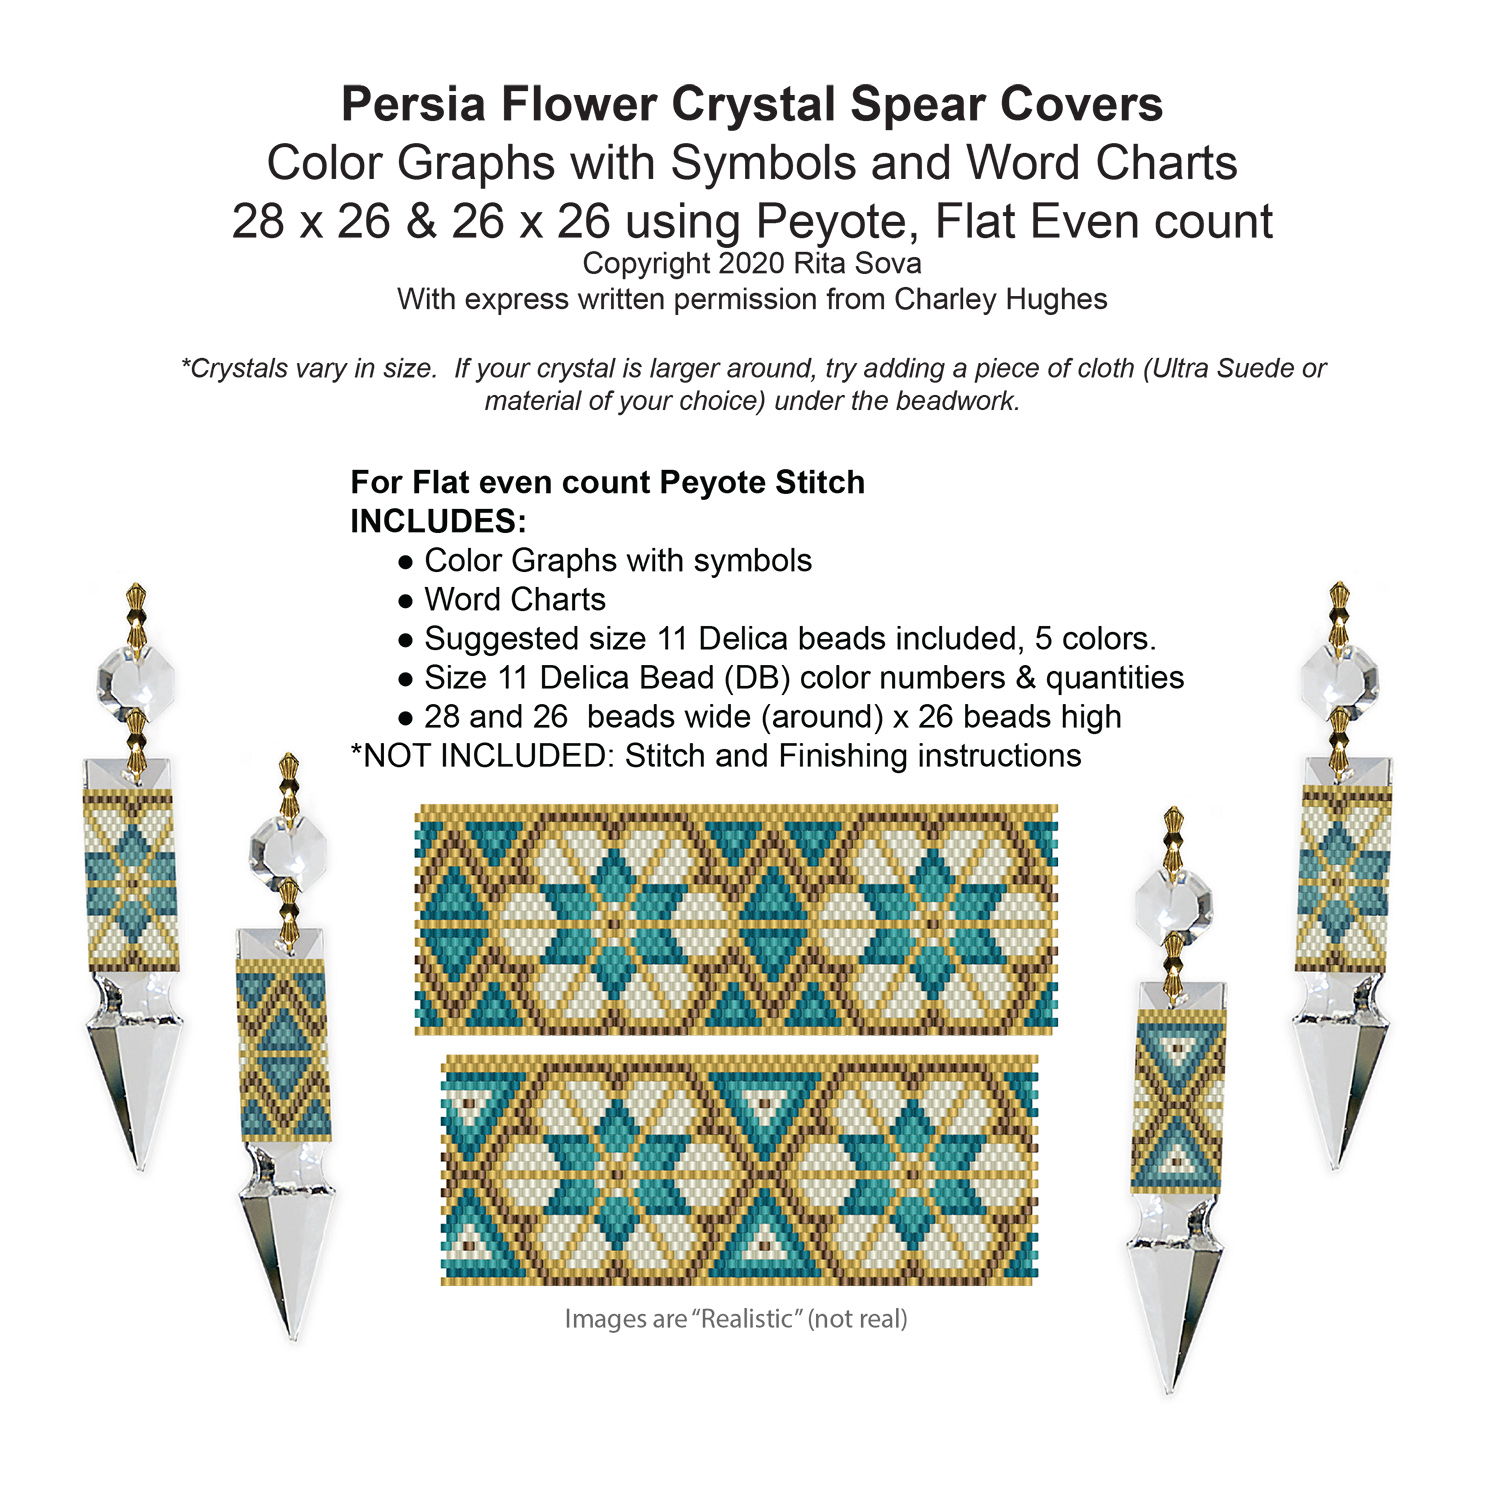 Persia Flower Crystal Spear Covers